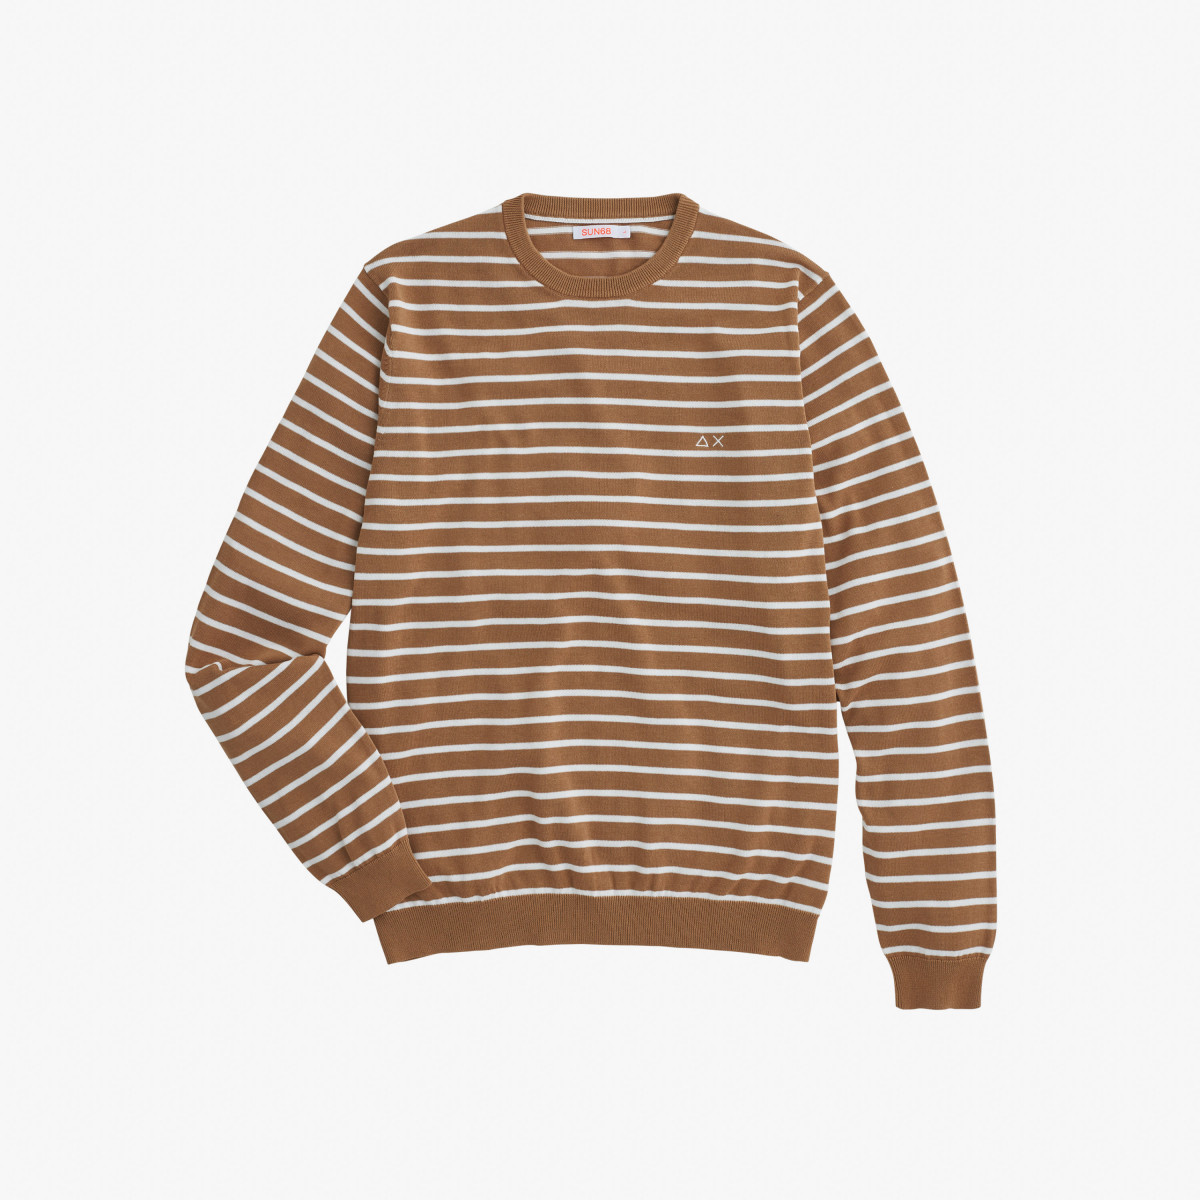 ROUND FULL STRIPES CREPE DESERT/WHITE